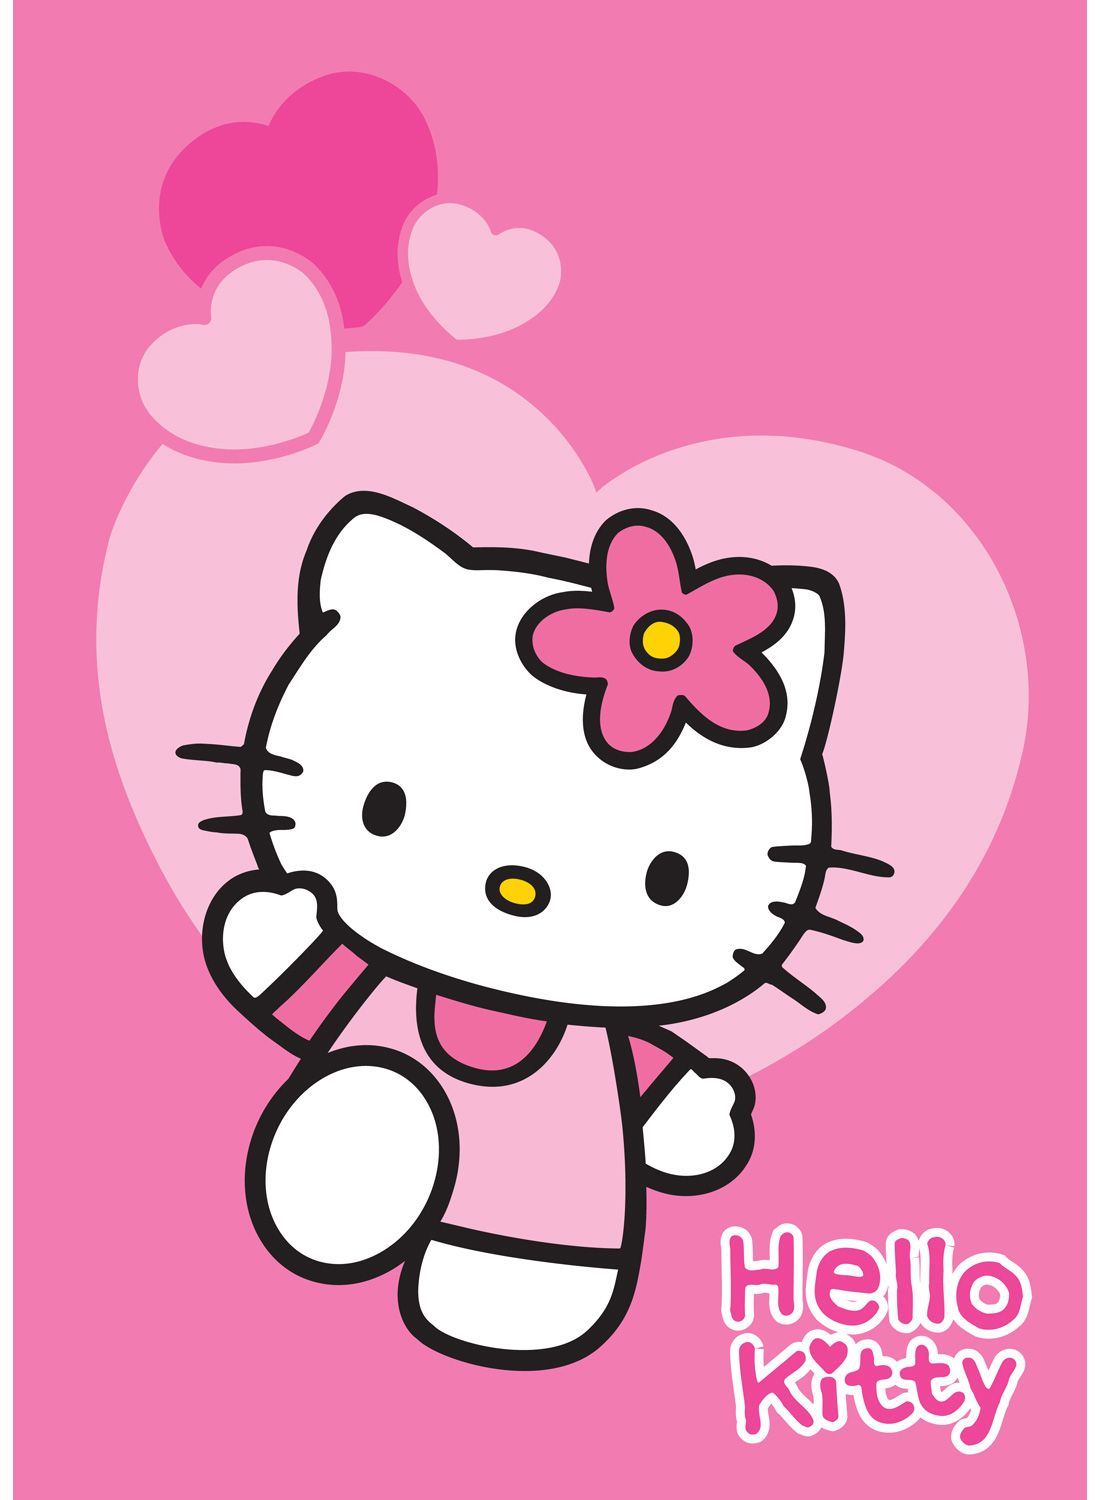 Wonderful Wallpaper Hello Kitty Love - 9e0d2817921b3f8897c098b4b088320b  Snapshot_807385.jpg